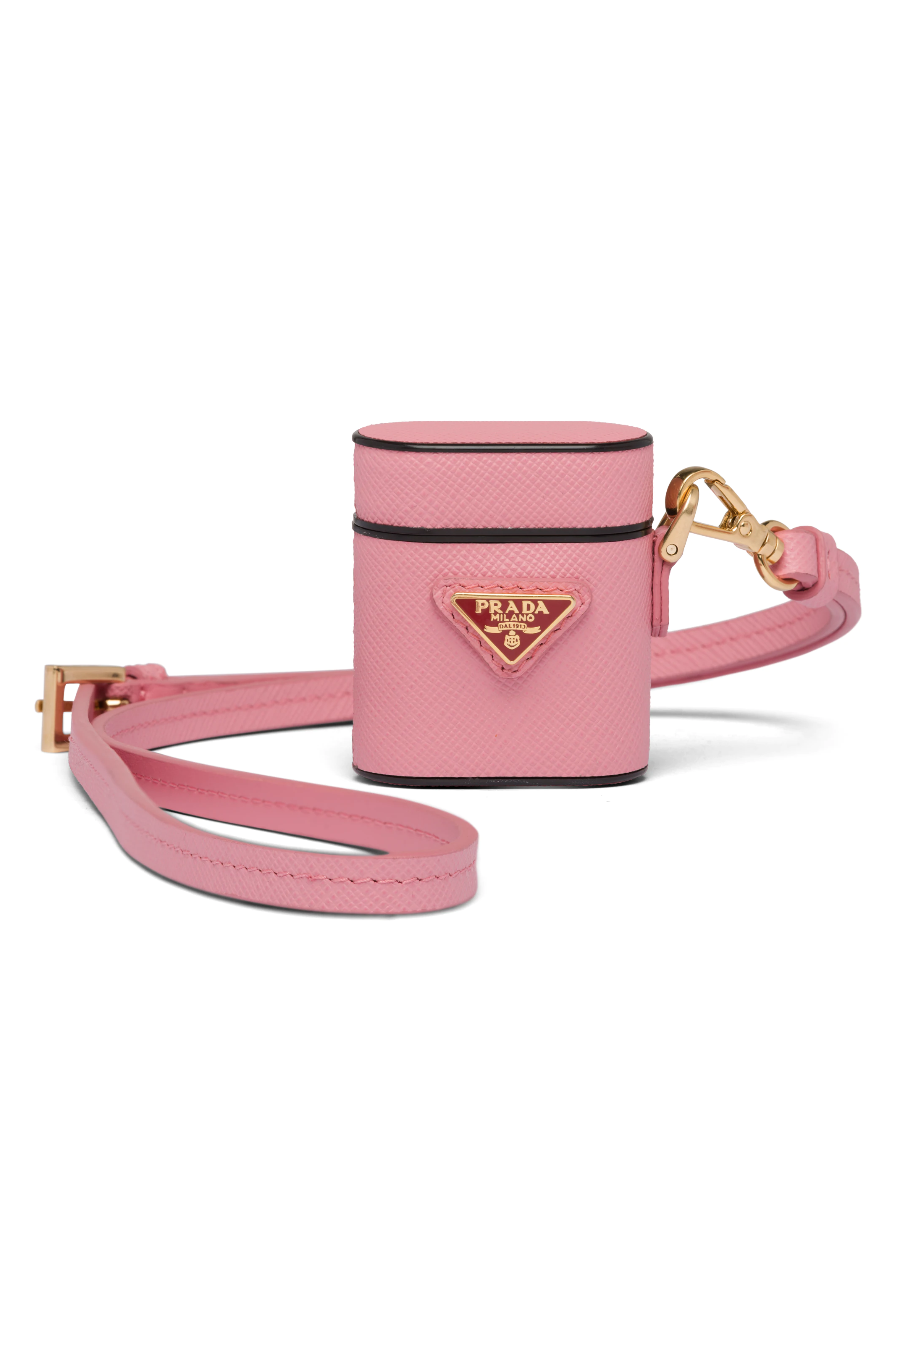 "<p><strong>Prada</strong></p><p>prada.com</p><p><strong>$460.00</strong></p><p><a href=""https://www.prada.com/us/en/women/accessories/technology/products.saffiano_leather_airpods_case.1ZD002_QHH_F0MY4.html"" rel=""nofollow noopener"" target=""_blank"" data-ylk=""slk:Shop It"" class=""link rapid-noclick-resp"">Shop It</a></p><p>Consider group gifting your sister-from-another-mister this adorable Prada AirPod case.</p>"